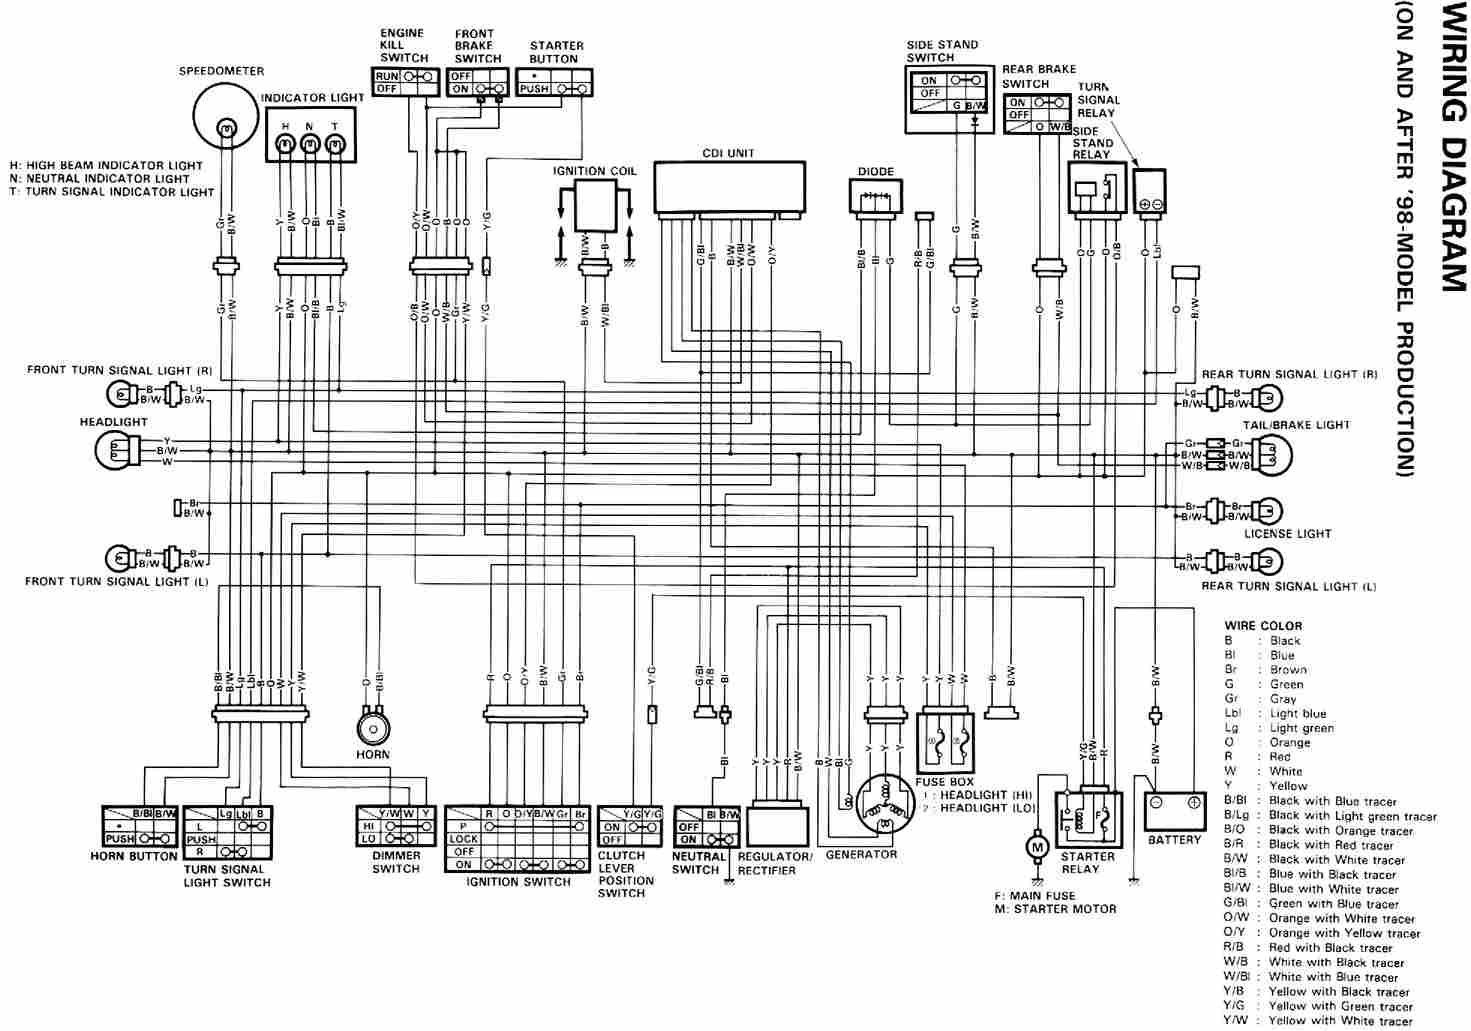 wiring diagram for suzuki ts wiring discover your wiring gsxr 750 pin wiring diagram